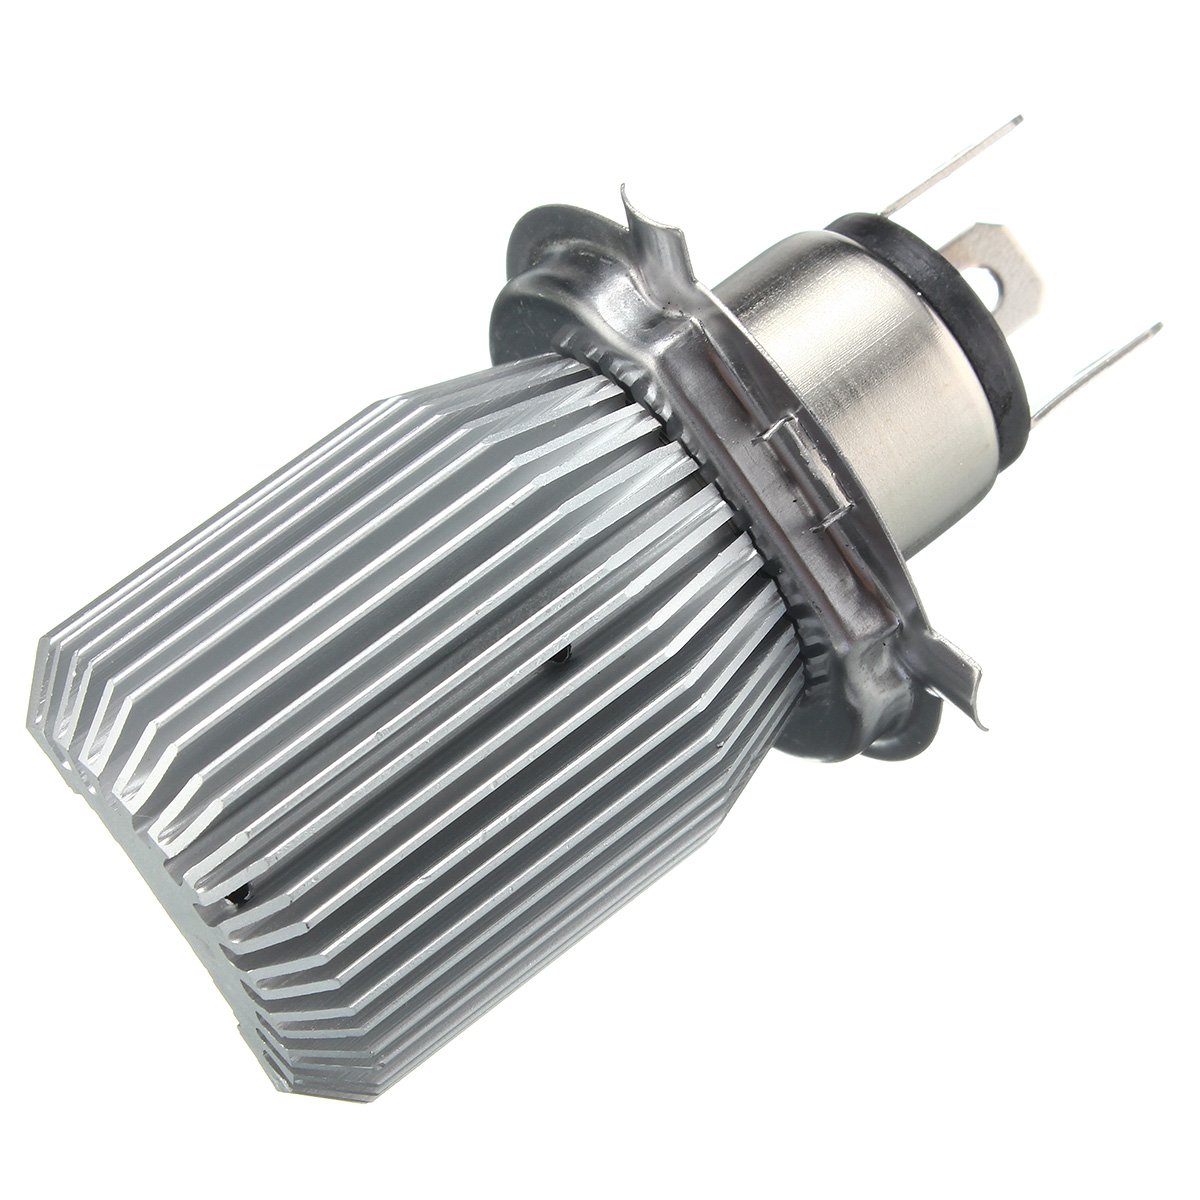 12V-24V H4 6000K White COB LED Hi/Lo Beam Motorcycle Headlight Front Light Bulb Lamp